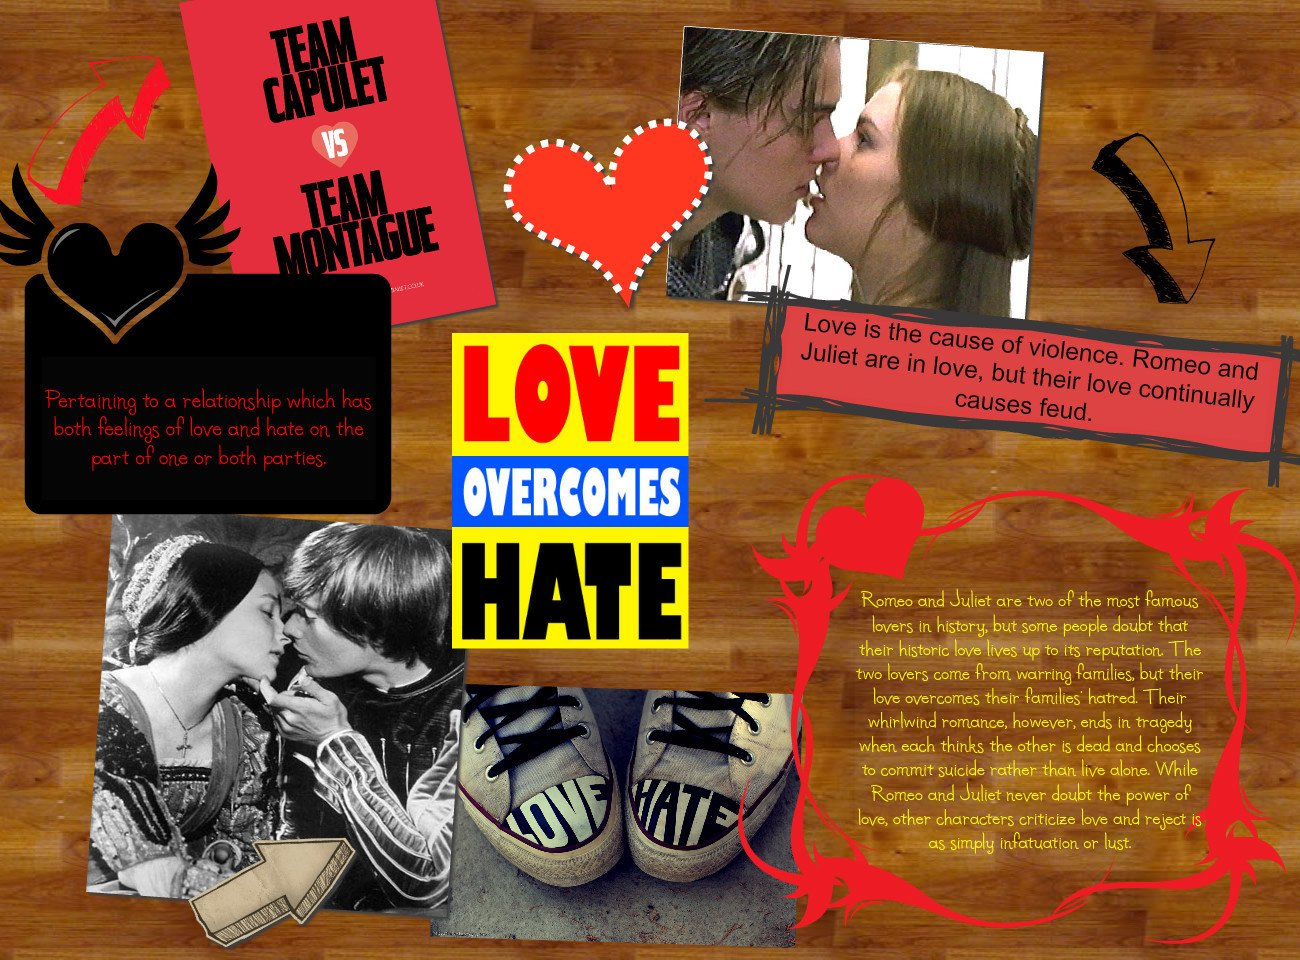 romeo and juliet essays love vs hate Romeo and juliet essay love vs hate grant cover letter the last line means that romeo and juliet's deaths were because of the hate between the two families, but.